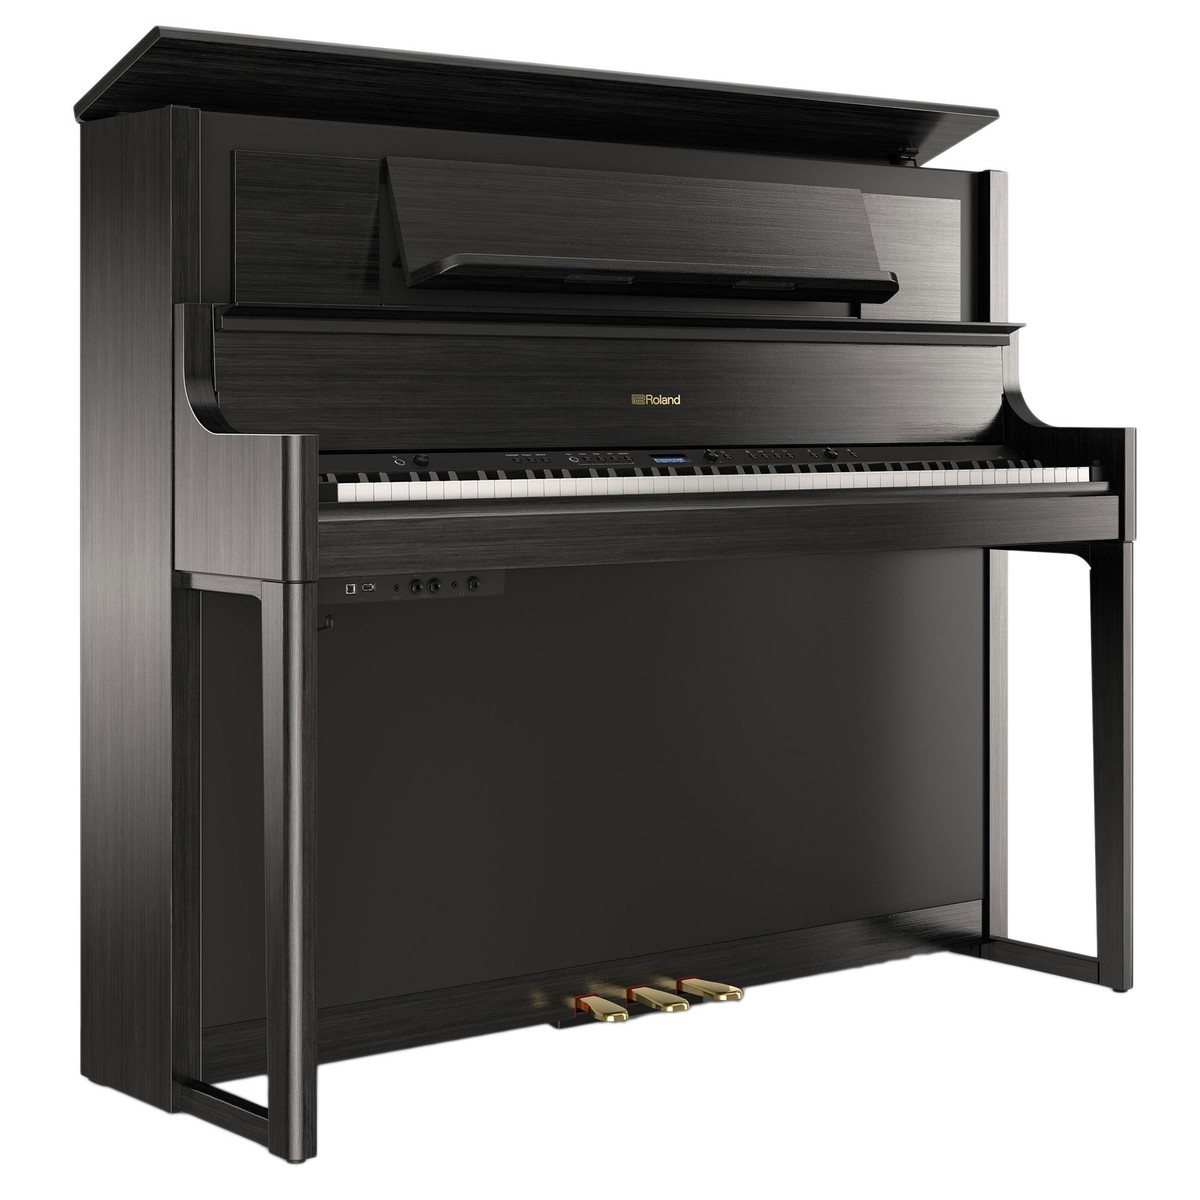 roland lx708 digital piano charcoal black at gear4music. Black Bedroom Furniture Sets. Home Design Ideas